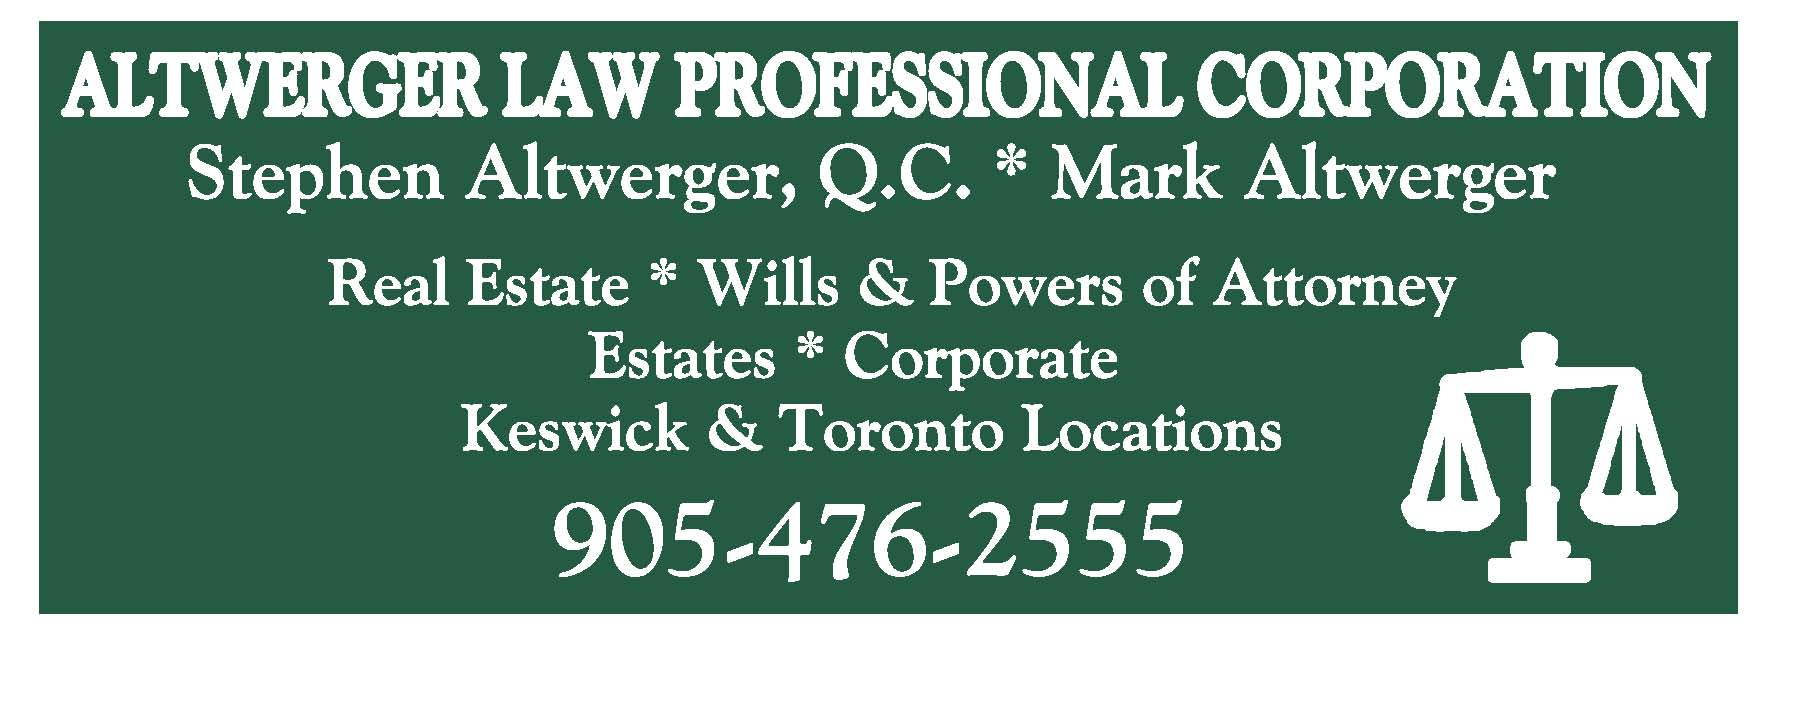 Atwerger Law